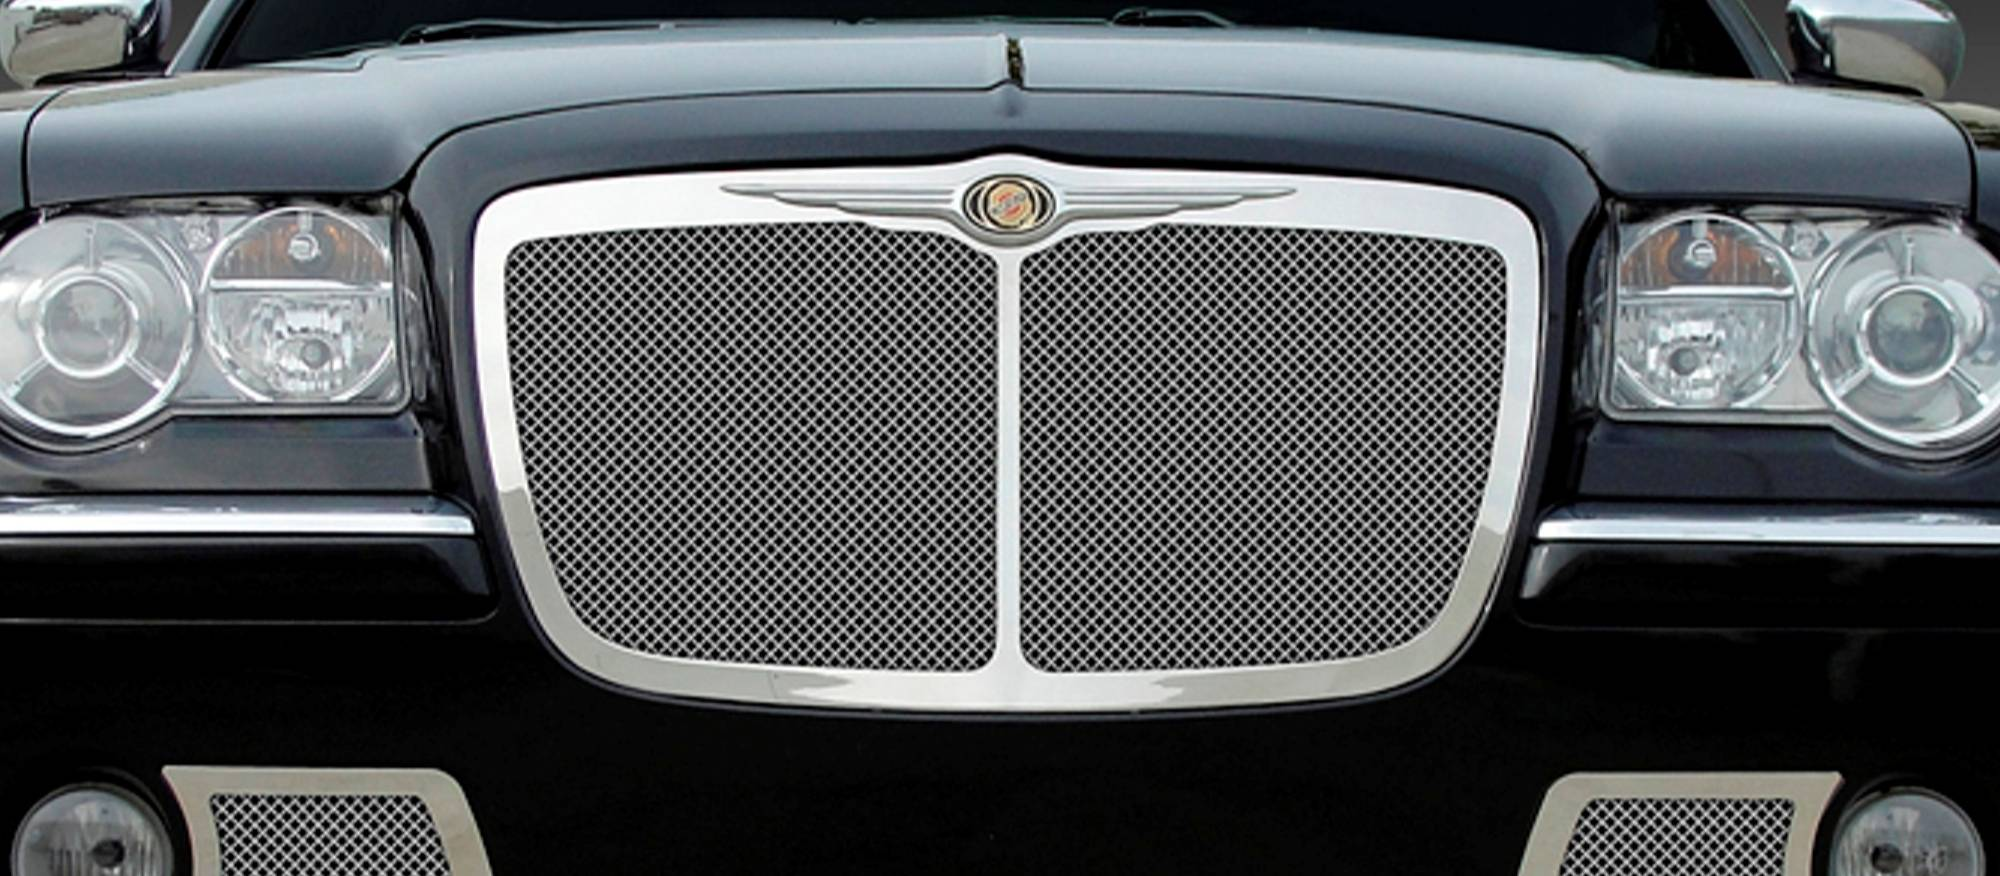 T-REX Grilles - 2005-2010 Chrysler 300, 300C, SRT Upper Class Mesh Grille, Polished, 1 Pc, Replacement, with Center Vertical Bar - PN #54479